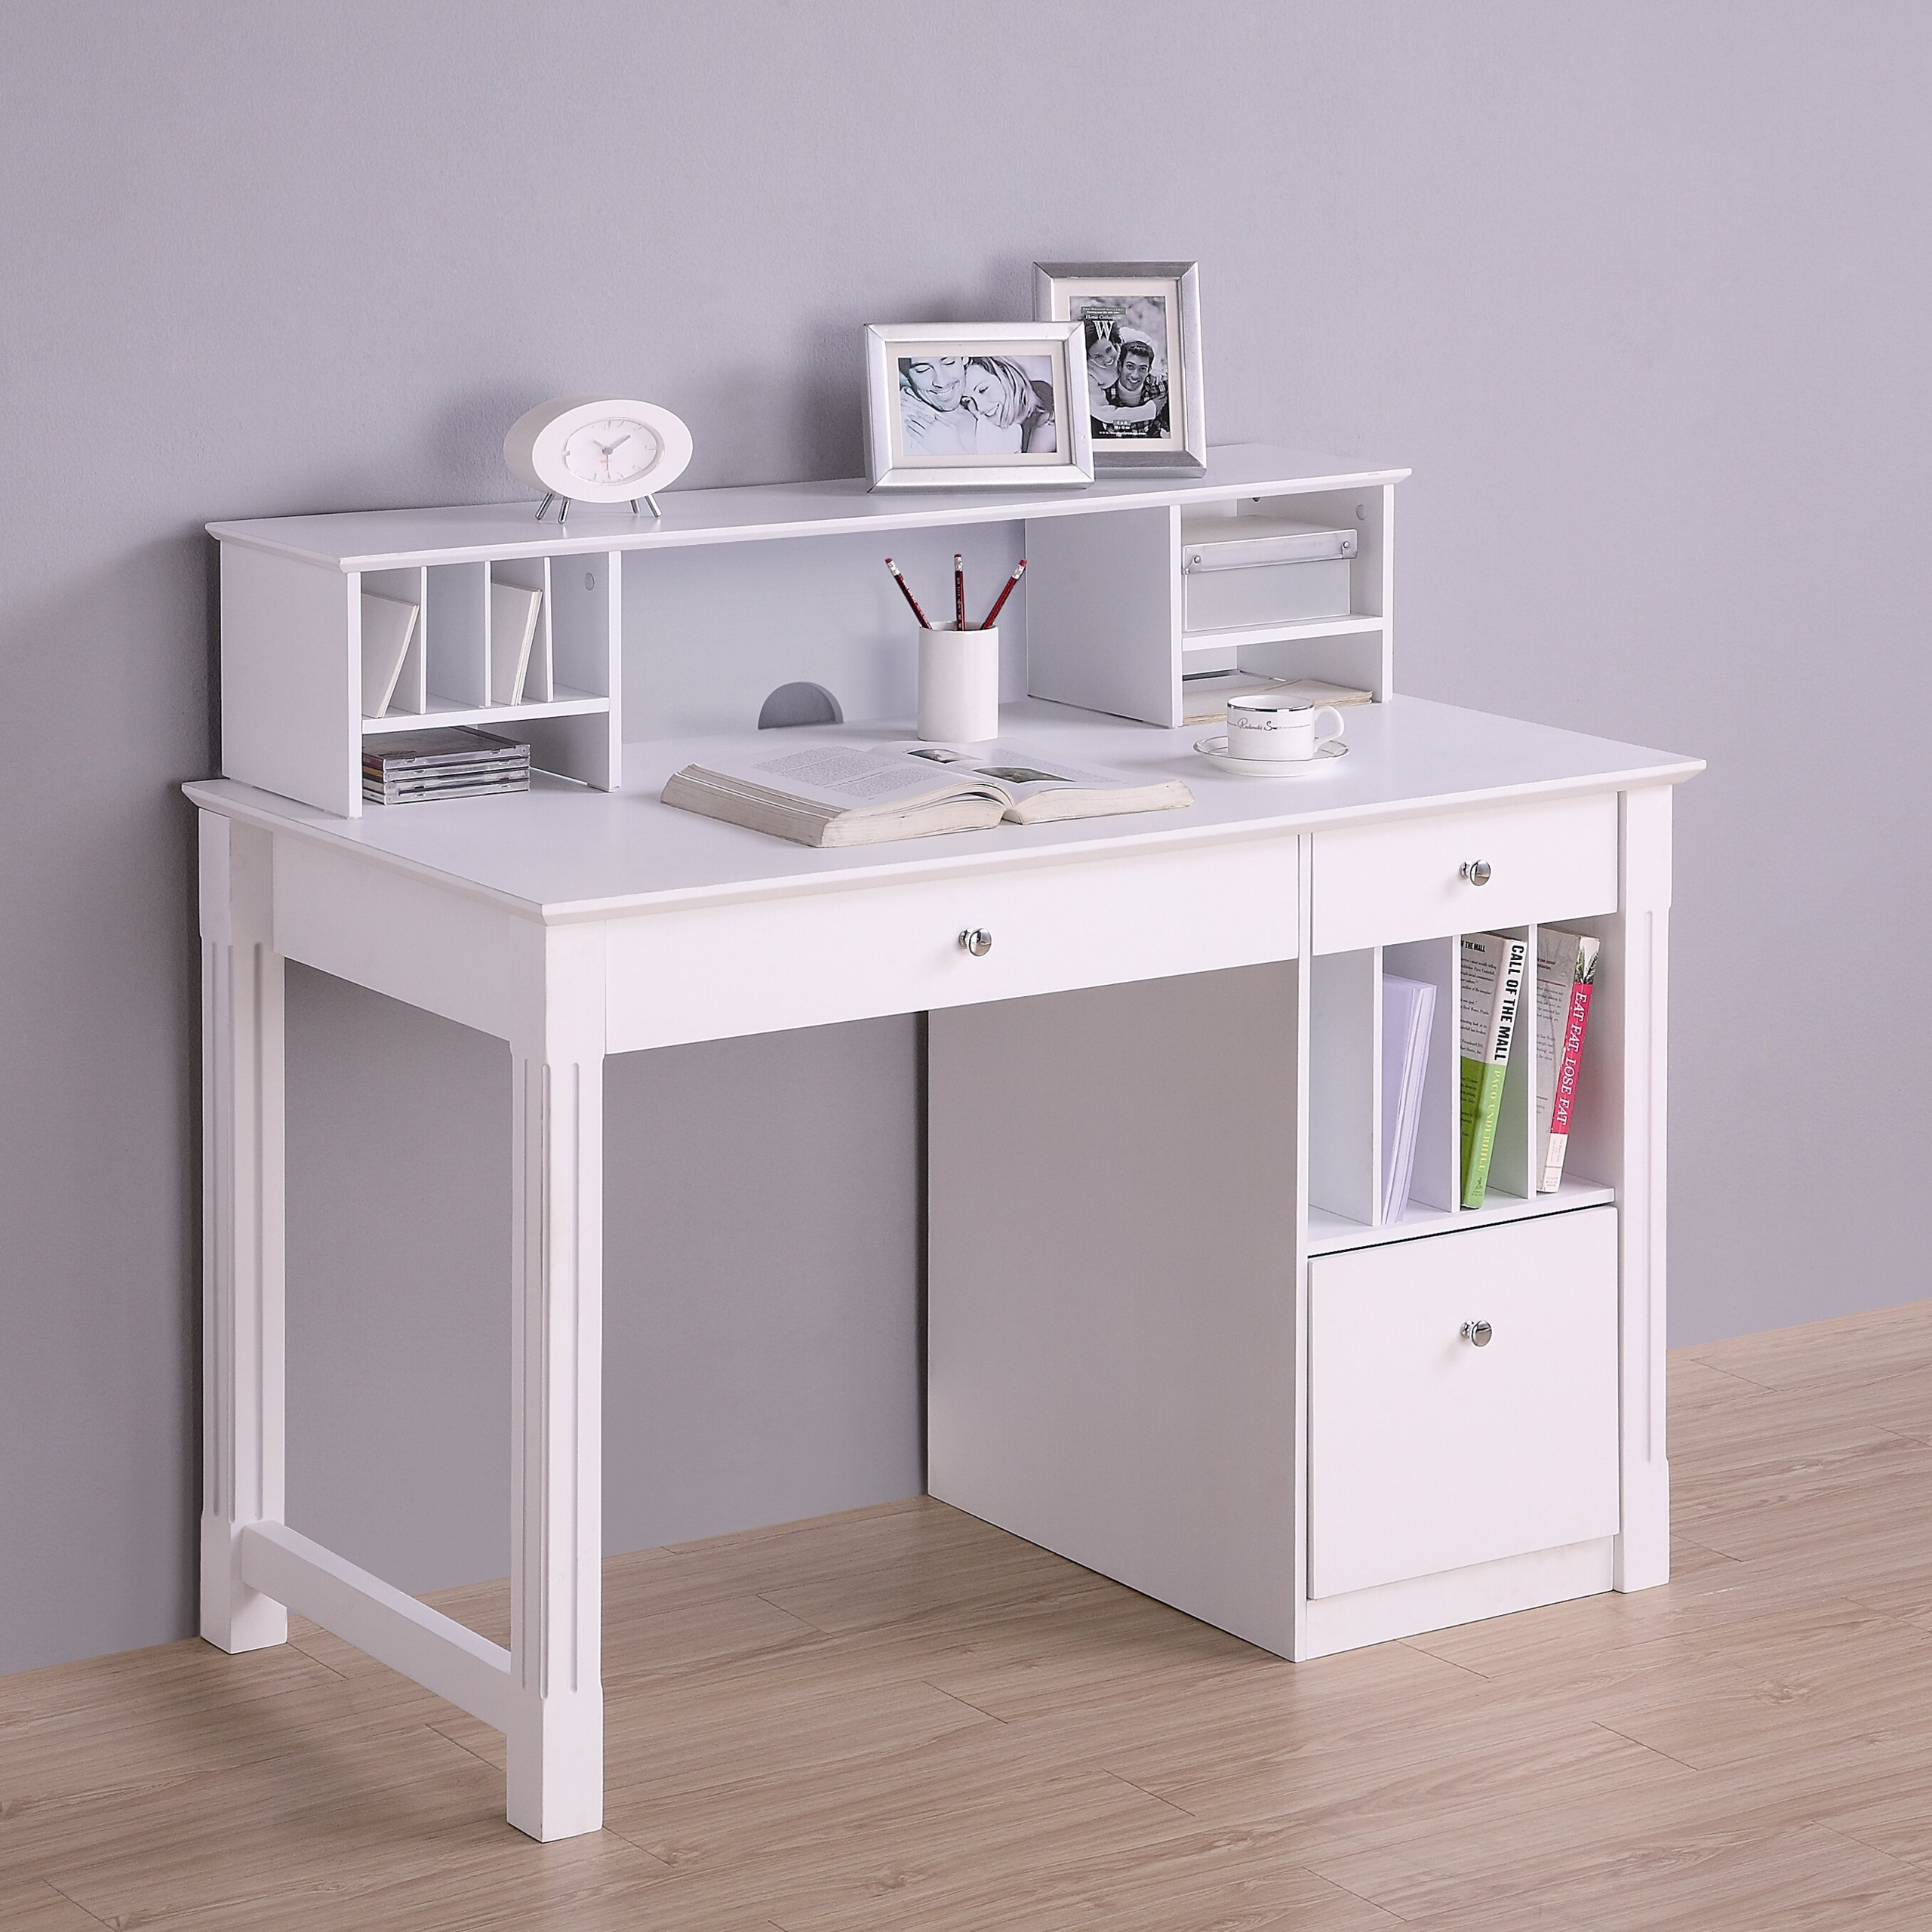 Incroyable Kids White Desk With Hutch   Ideas On Foter